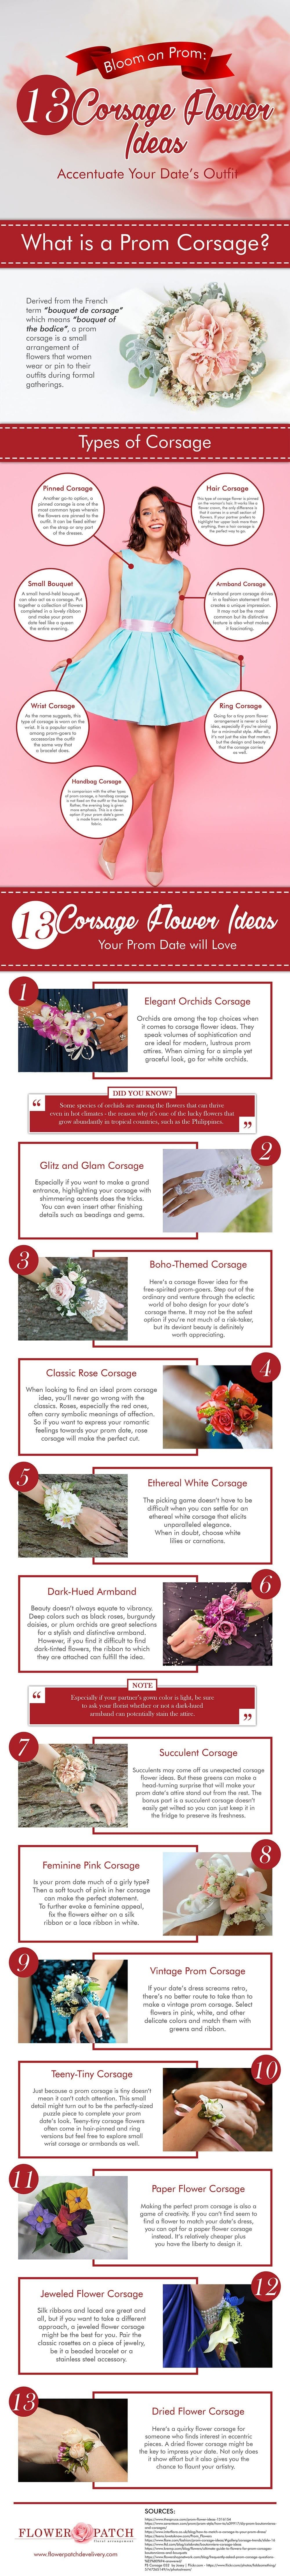 13 Corsage Flower Ideas for Your Prom Night #infographic